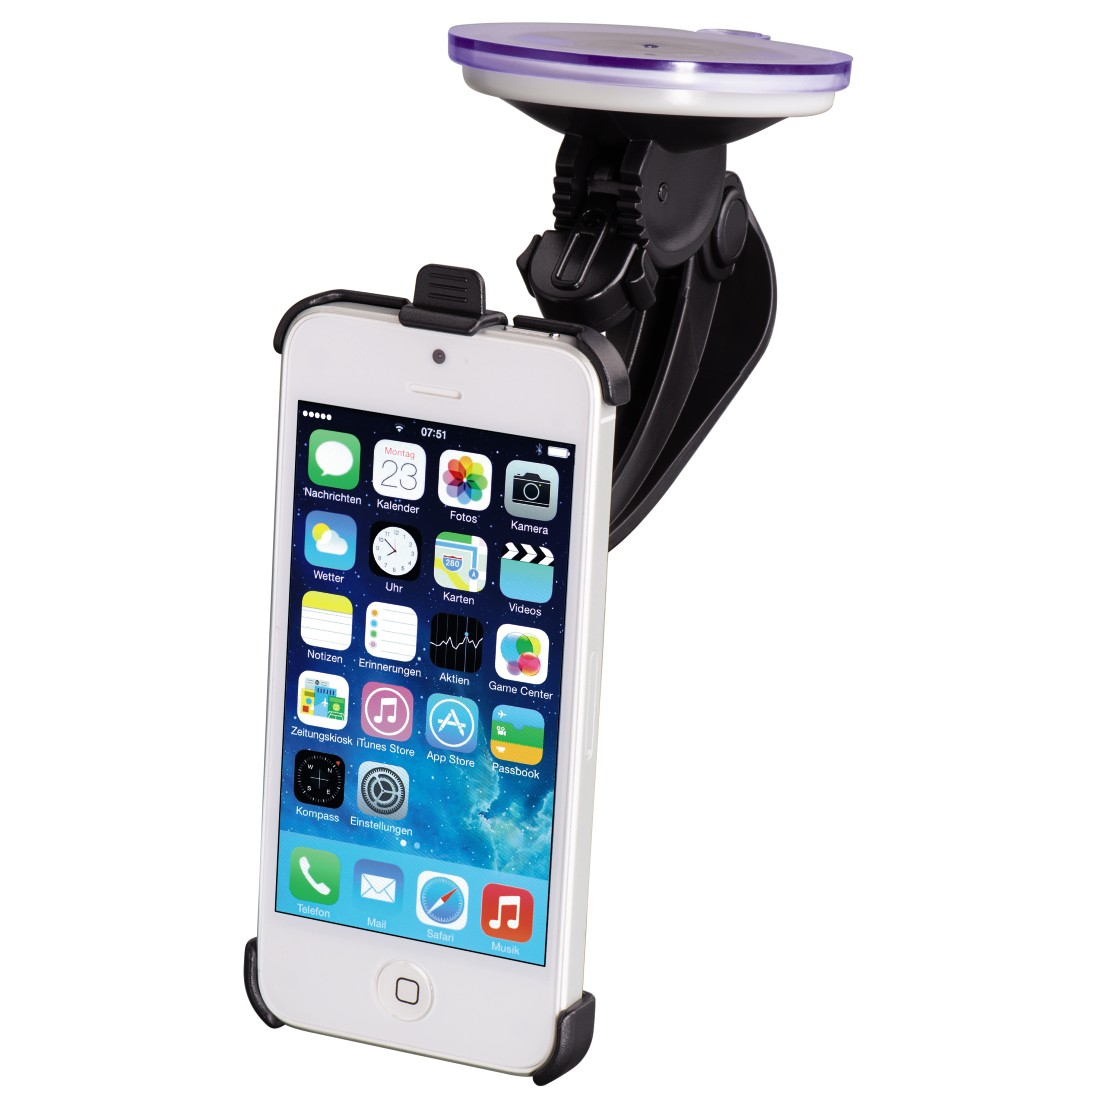 awx High-Res Appliance - Hama, Basic Holder for Apple iPhone 5/5s